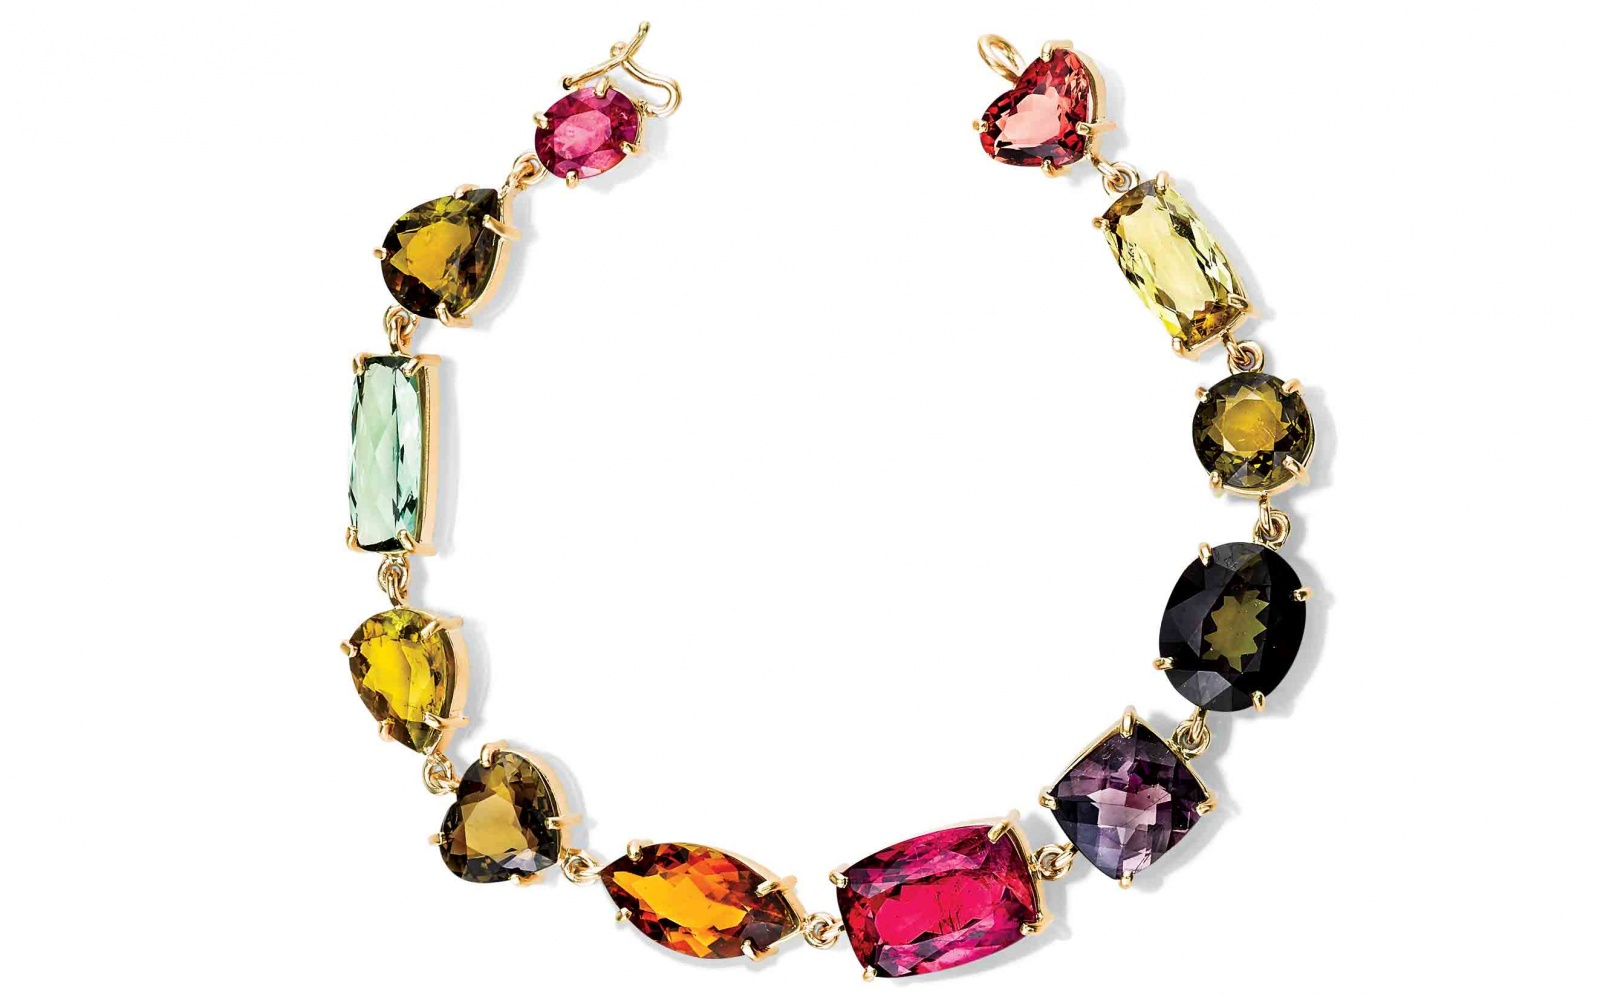 Irene Neuwirth Necklace